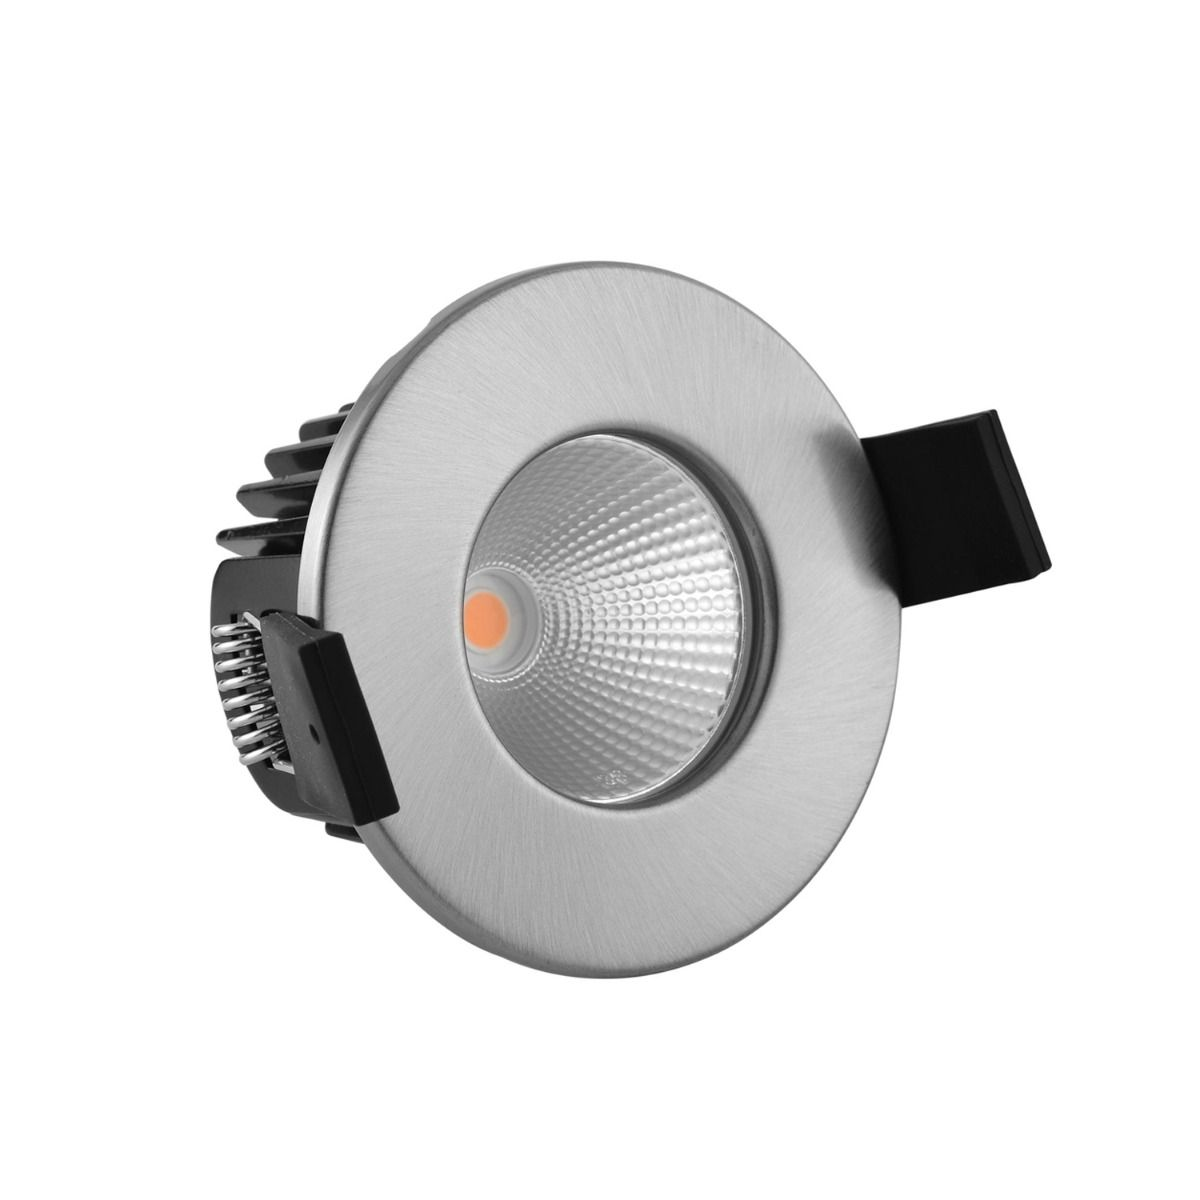 Noxion LED Strahler Ember IP65 2700K Aluminium 6W | Beste Farbwiedergabe - Dimmbar